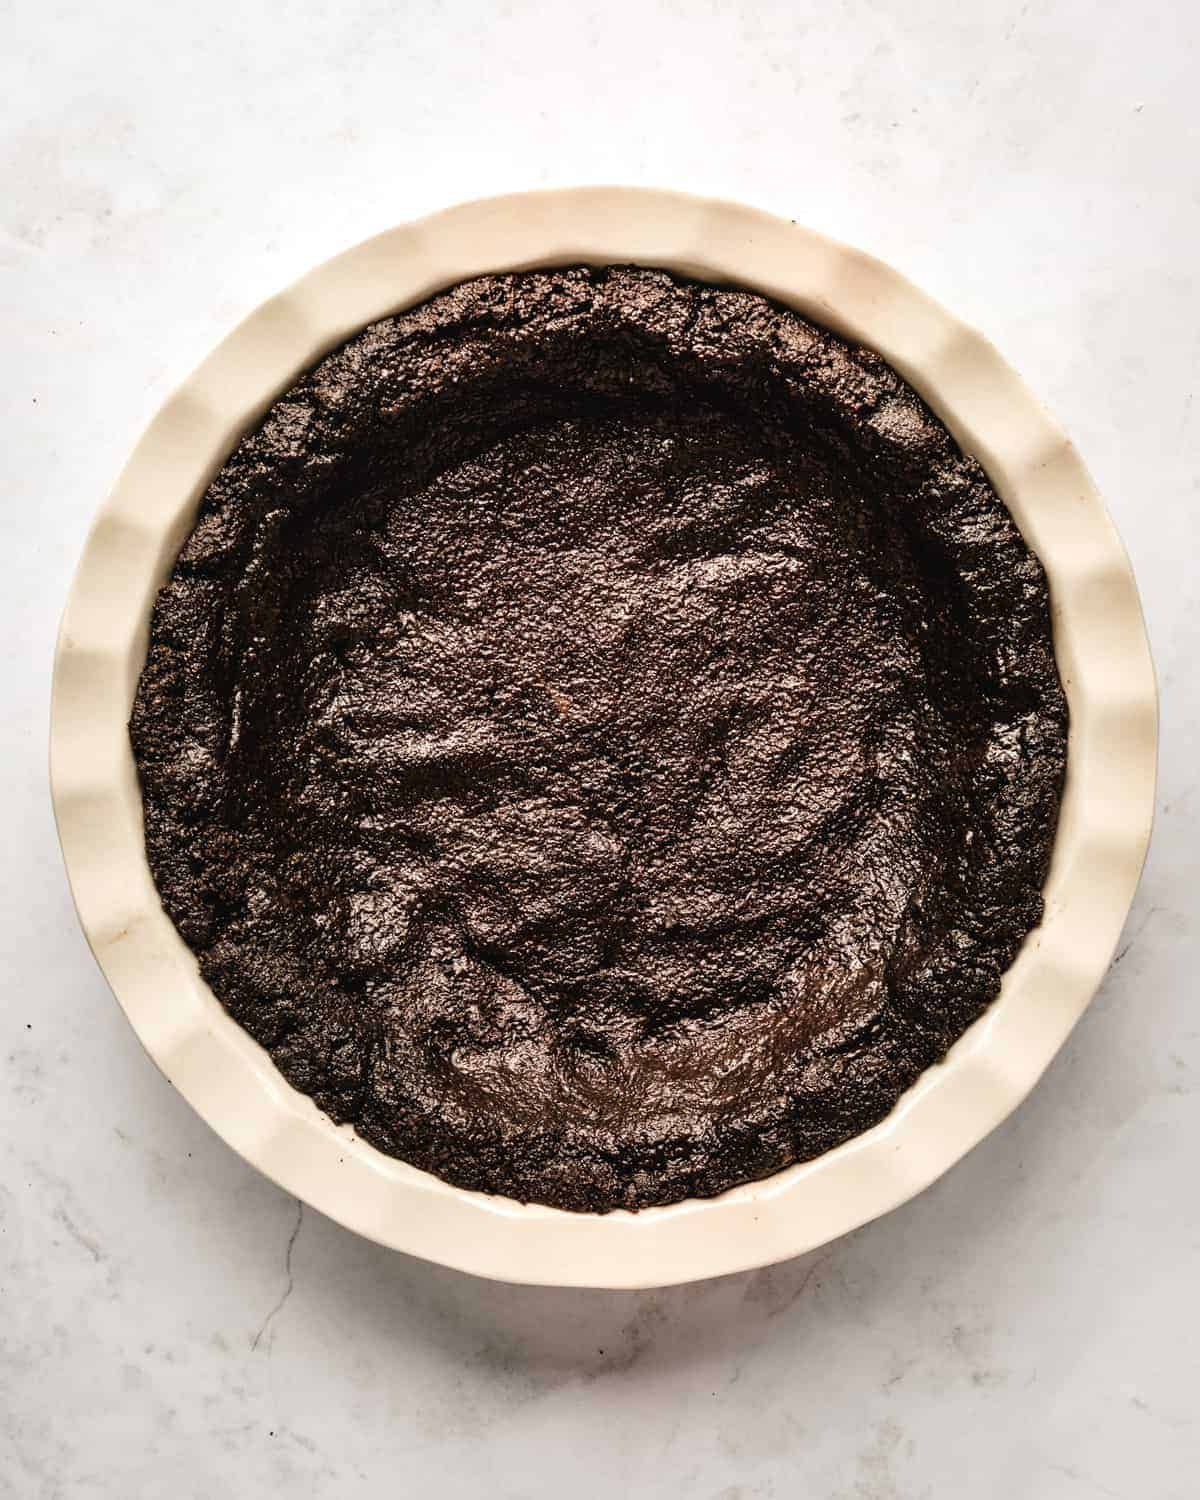 This quick and easy No Bake Nutella Pie starts off with a quick and easy crust made from crushed Oreo cookies.